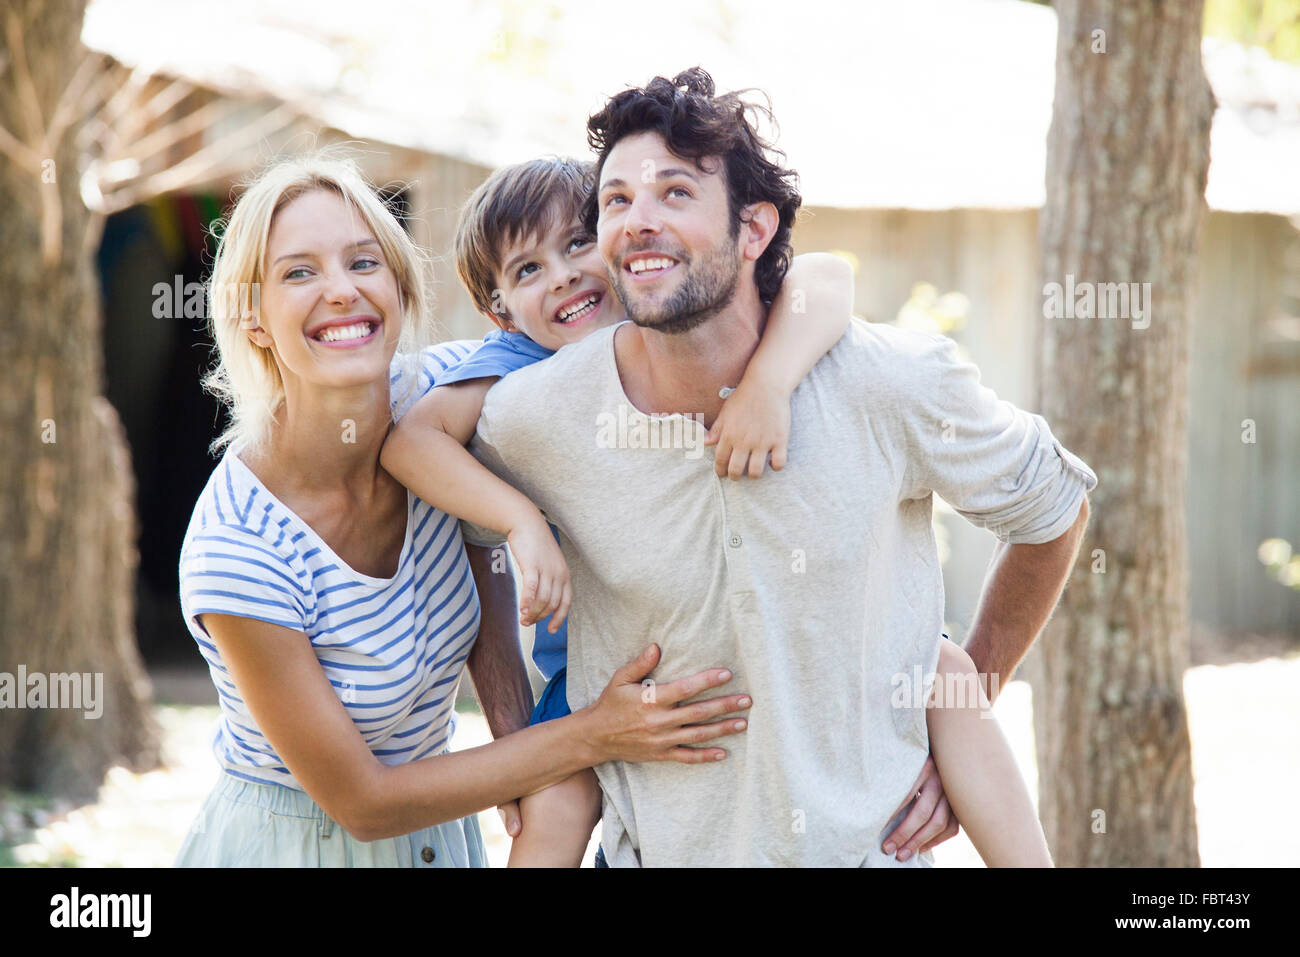 Family with one child, portrait - Stock Image